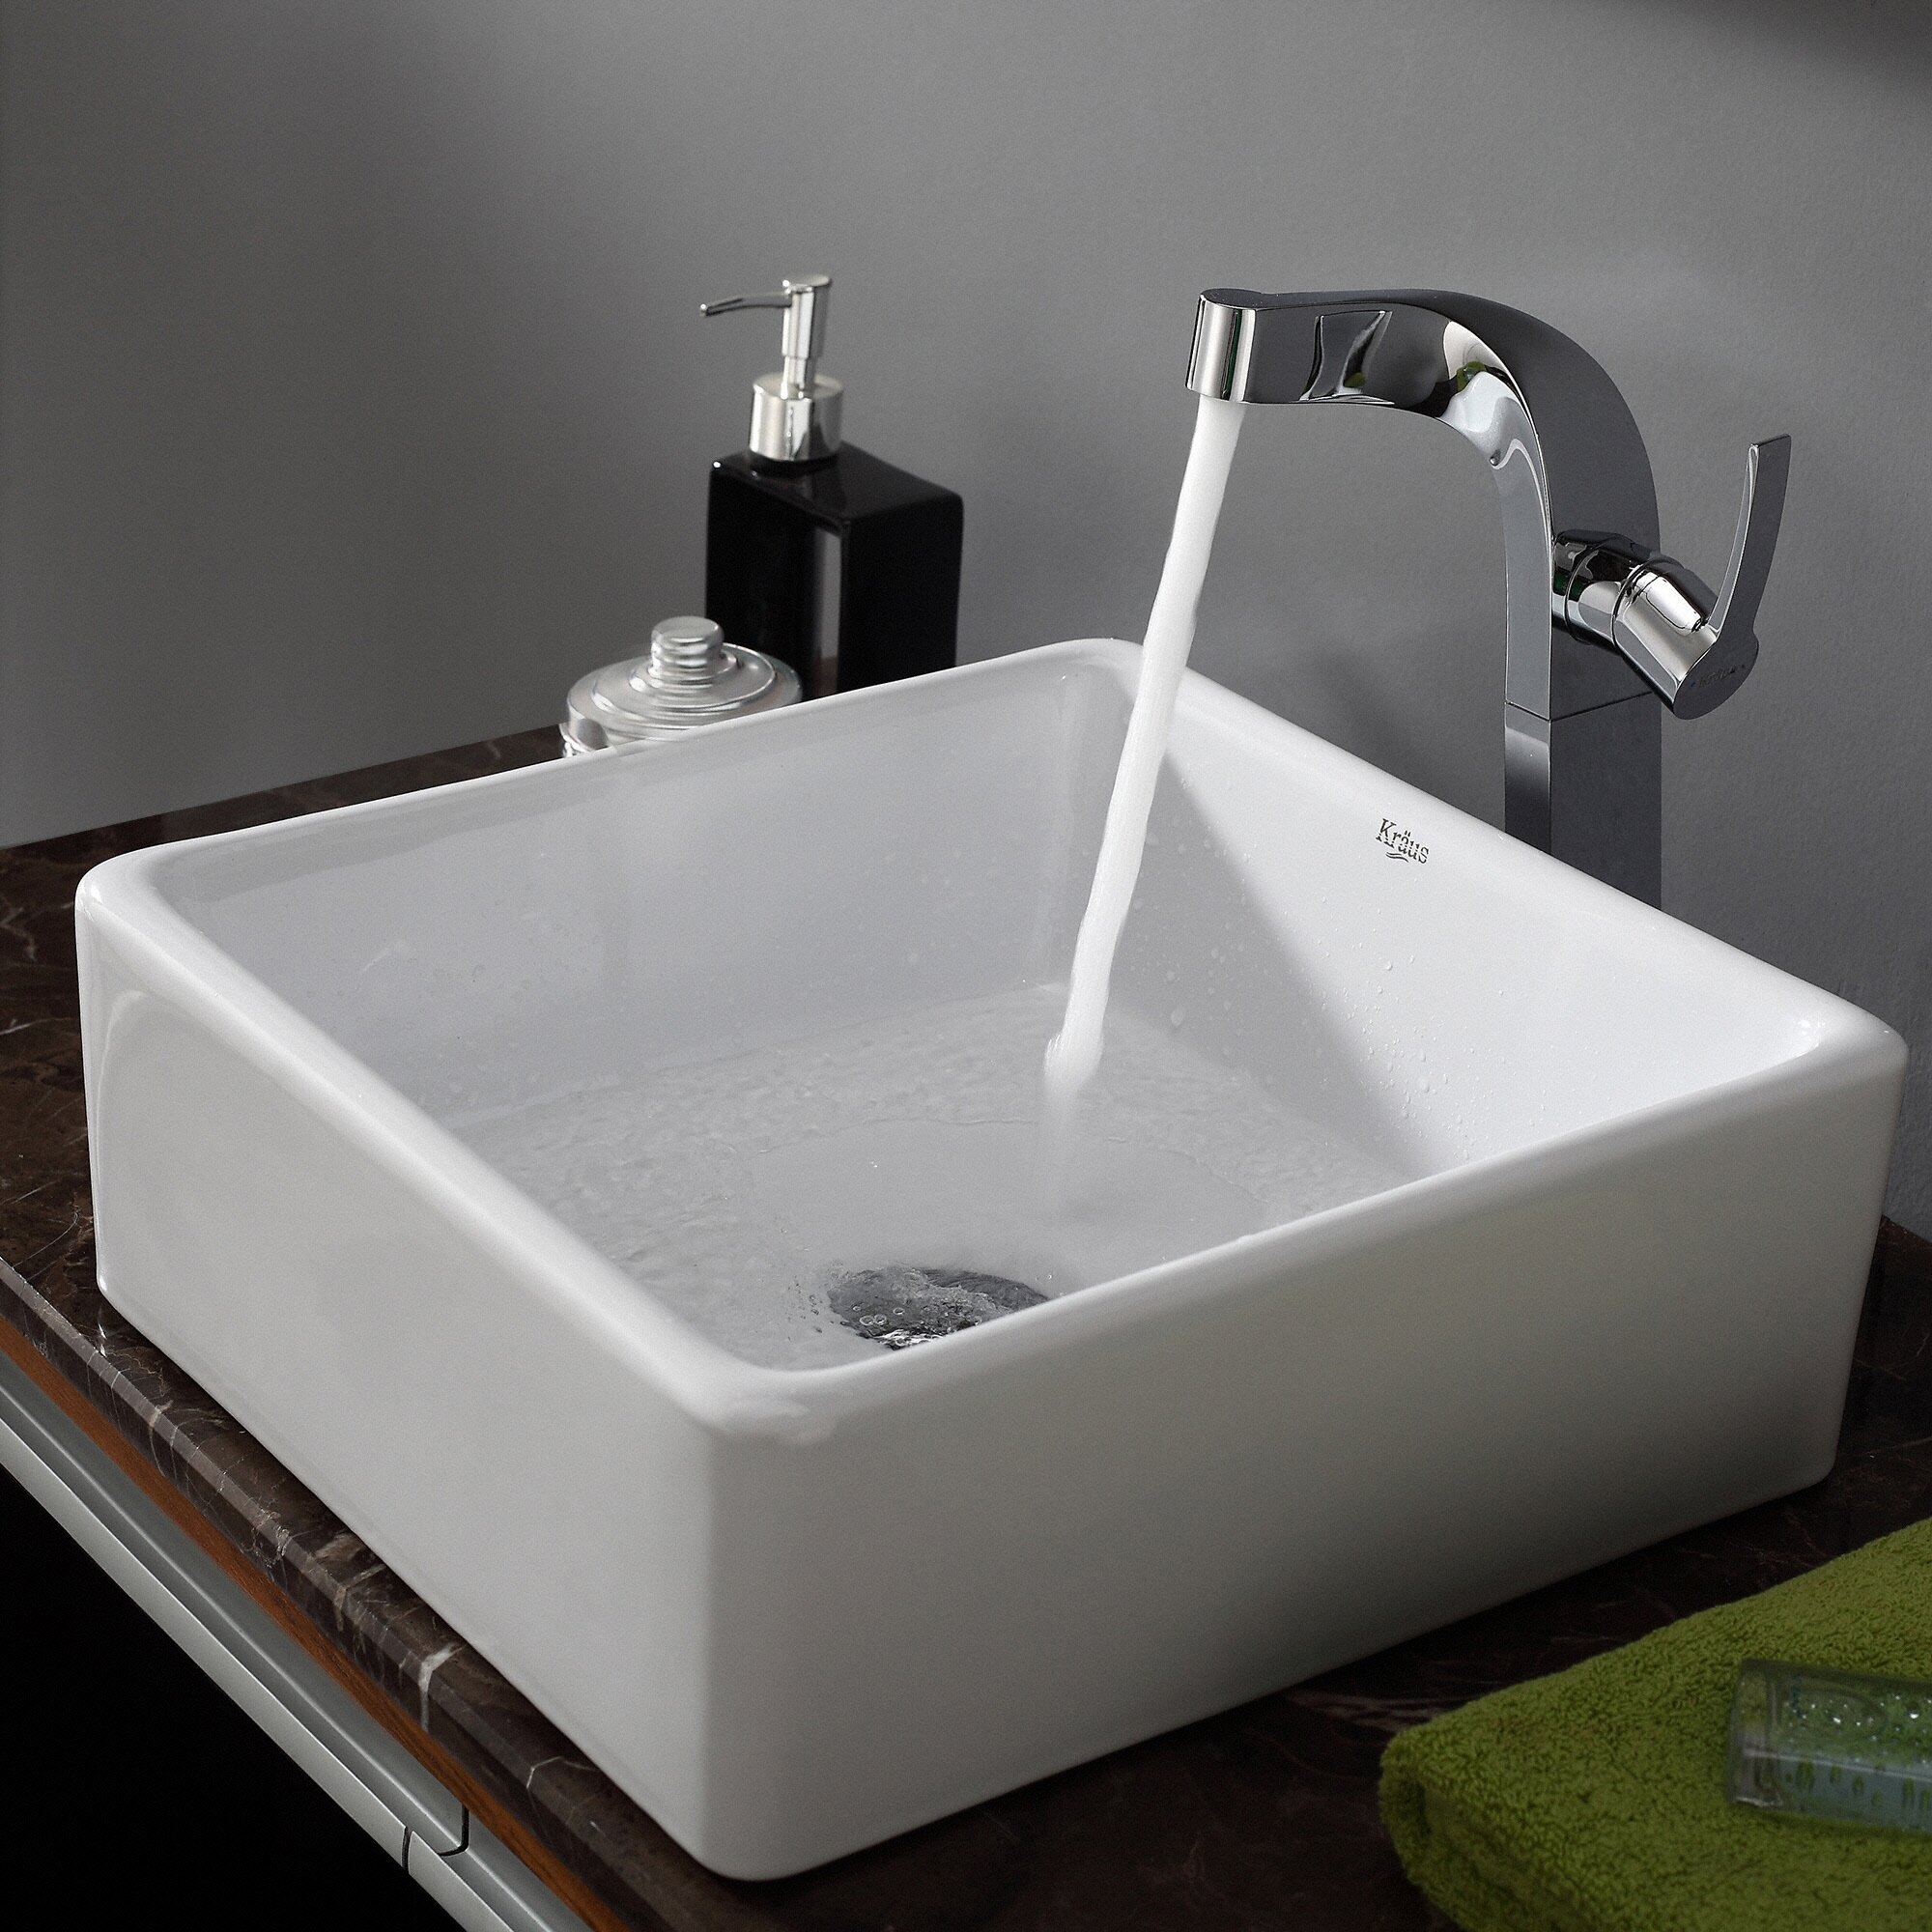 Square bathroom sinks - Square Bathroom Sinks 0